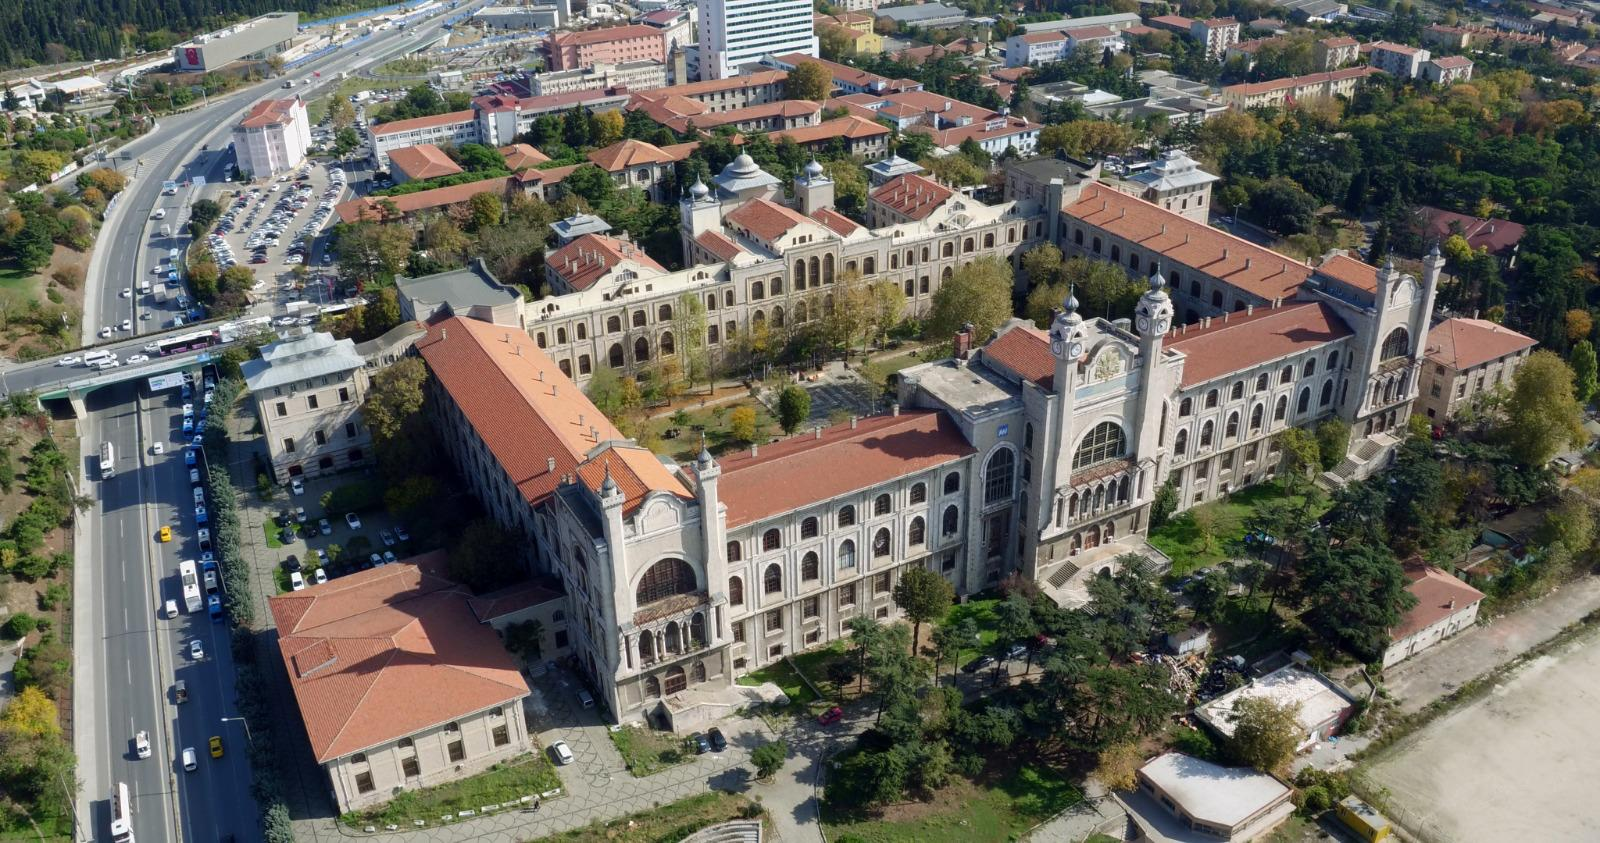 Marmara University Faculty of Law Takes Place in the Top Three